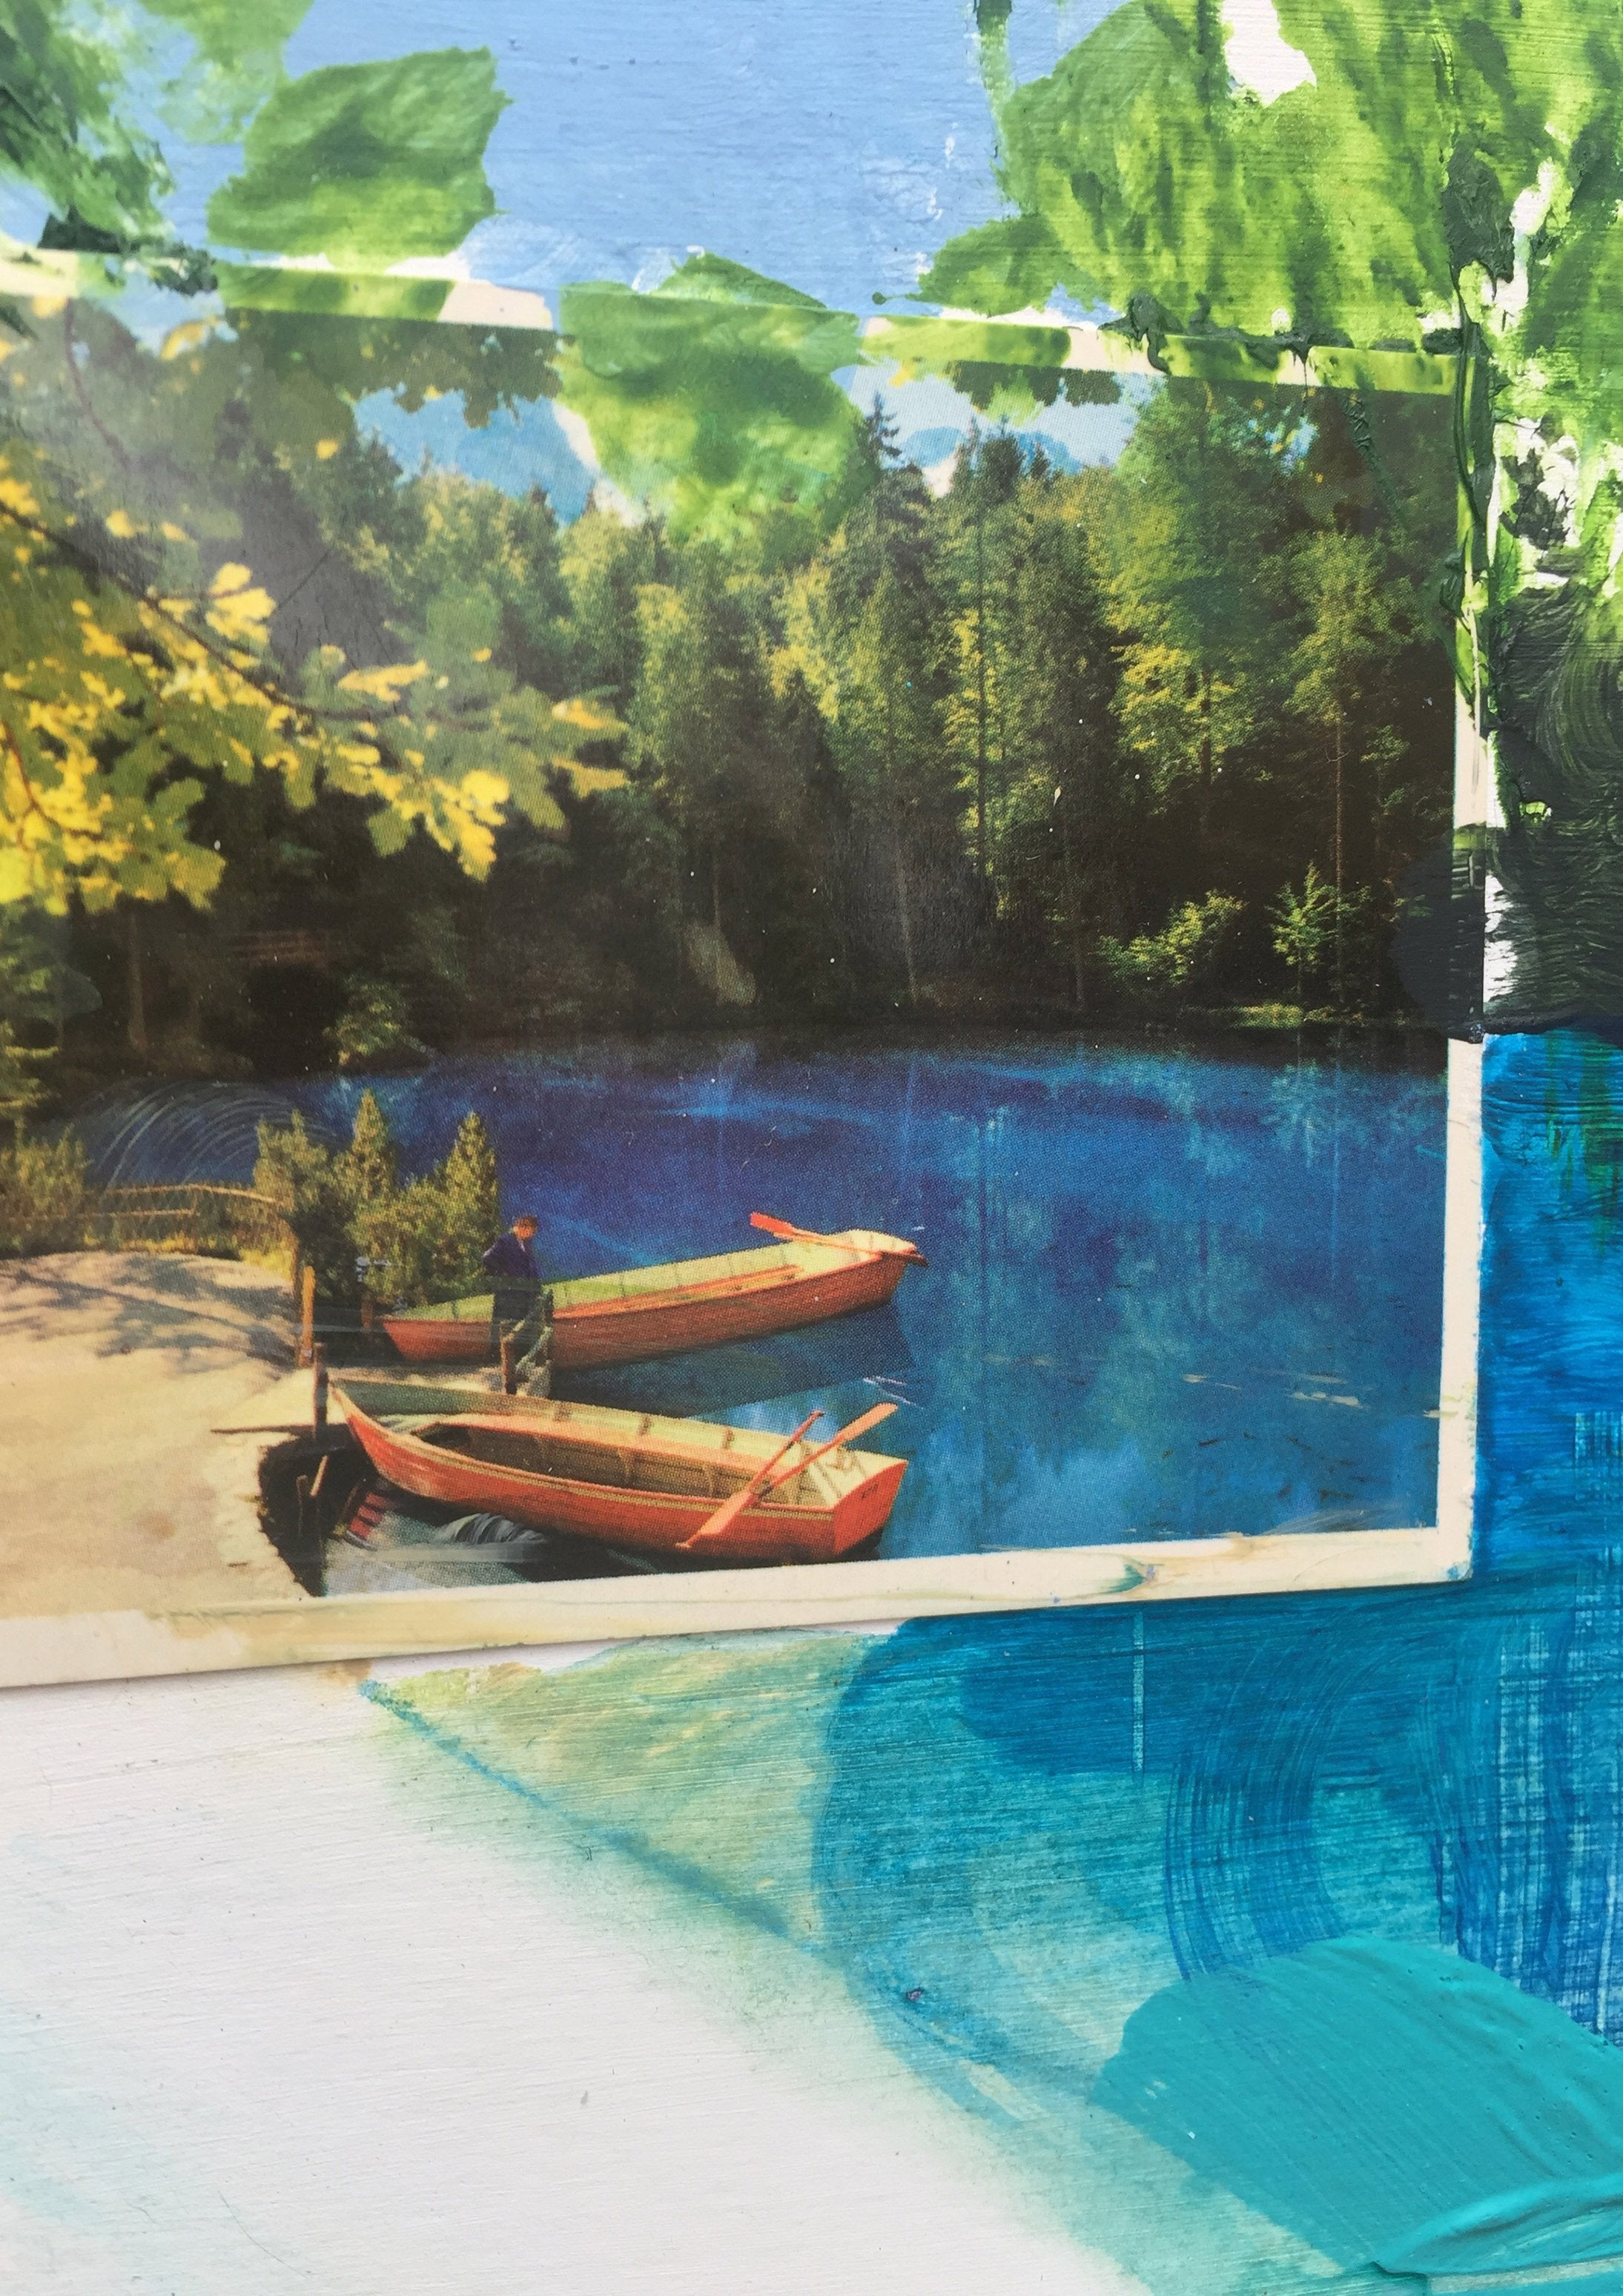 Detail of 'Fake Views VII: Blausee', a new landscape painting and collage by contemporary artist Faye Dobinson